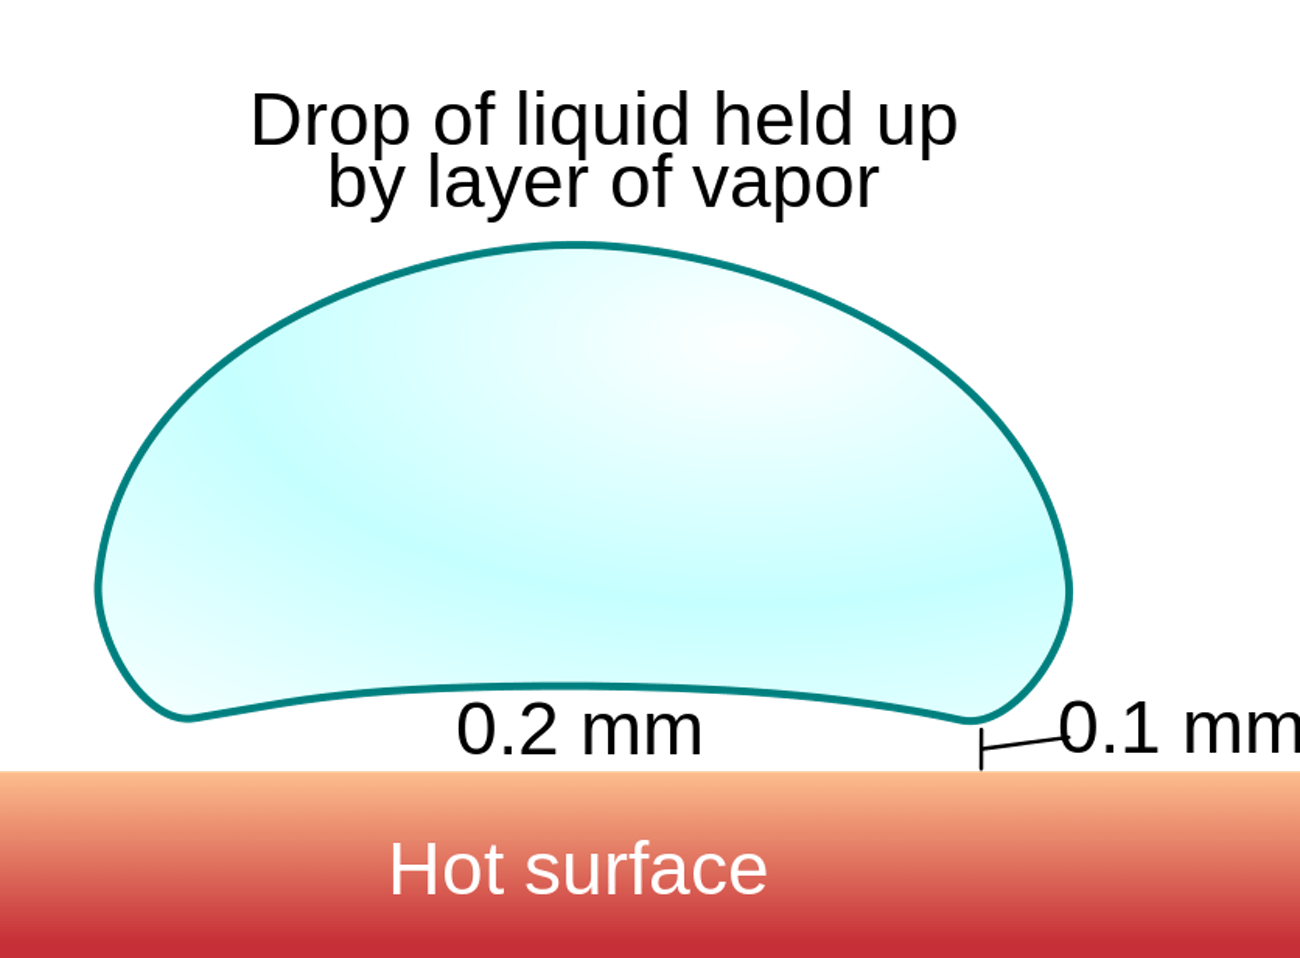 Leidenfrost Effect